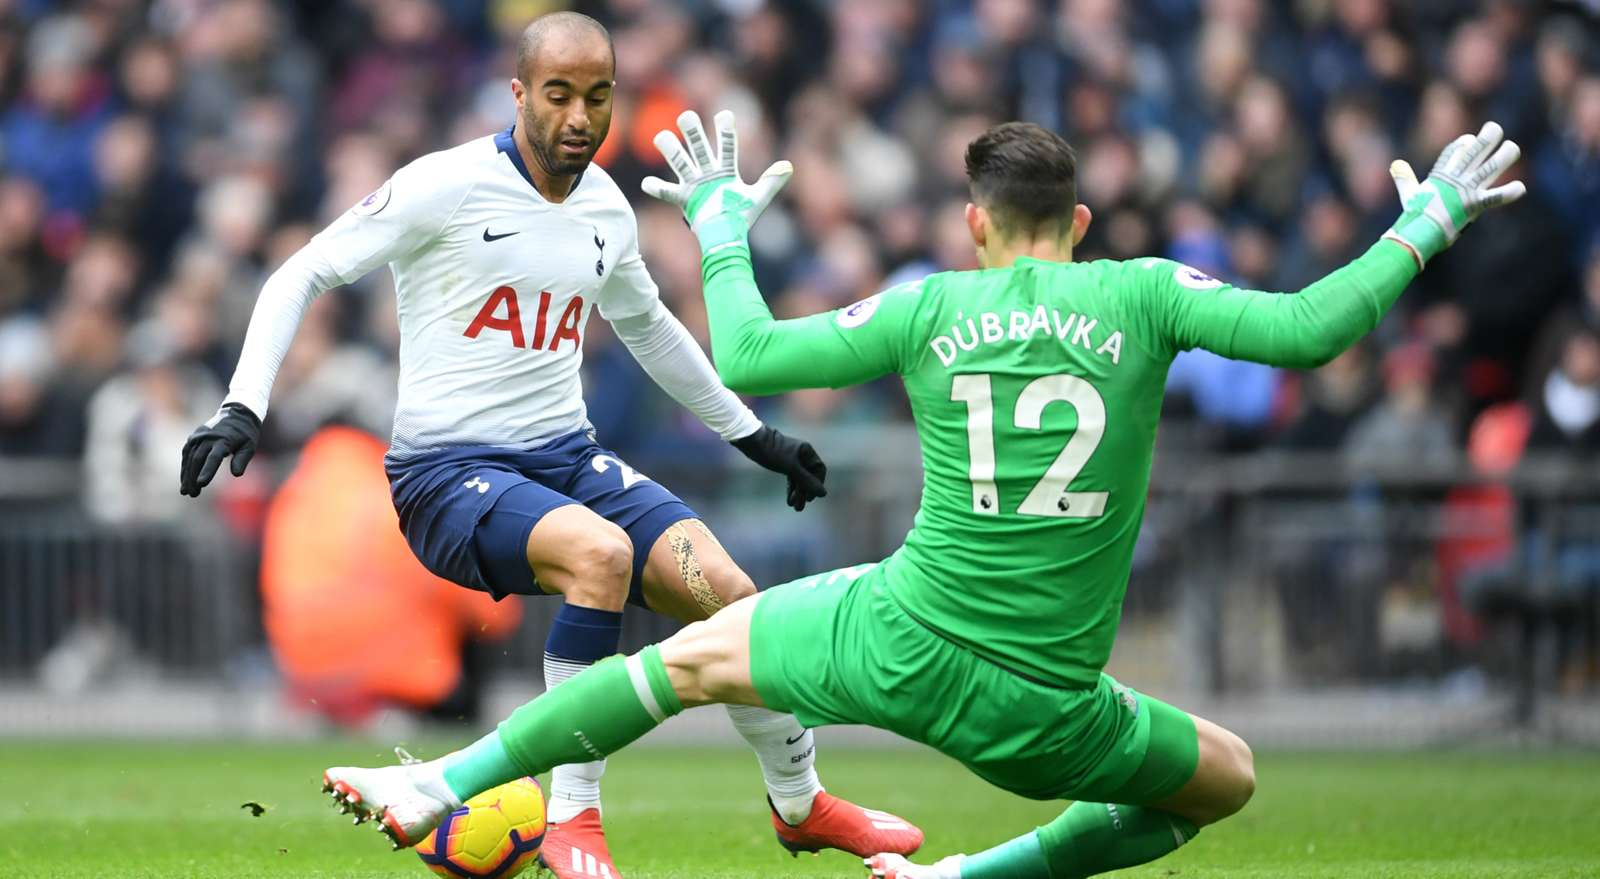 Photo of Tottenham vs Newcastle United 1-0: Match Report & Highlights